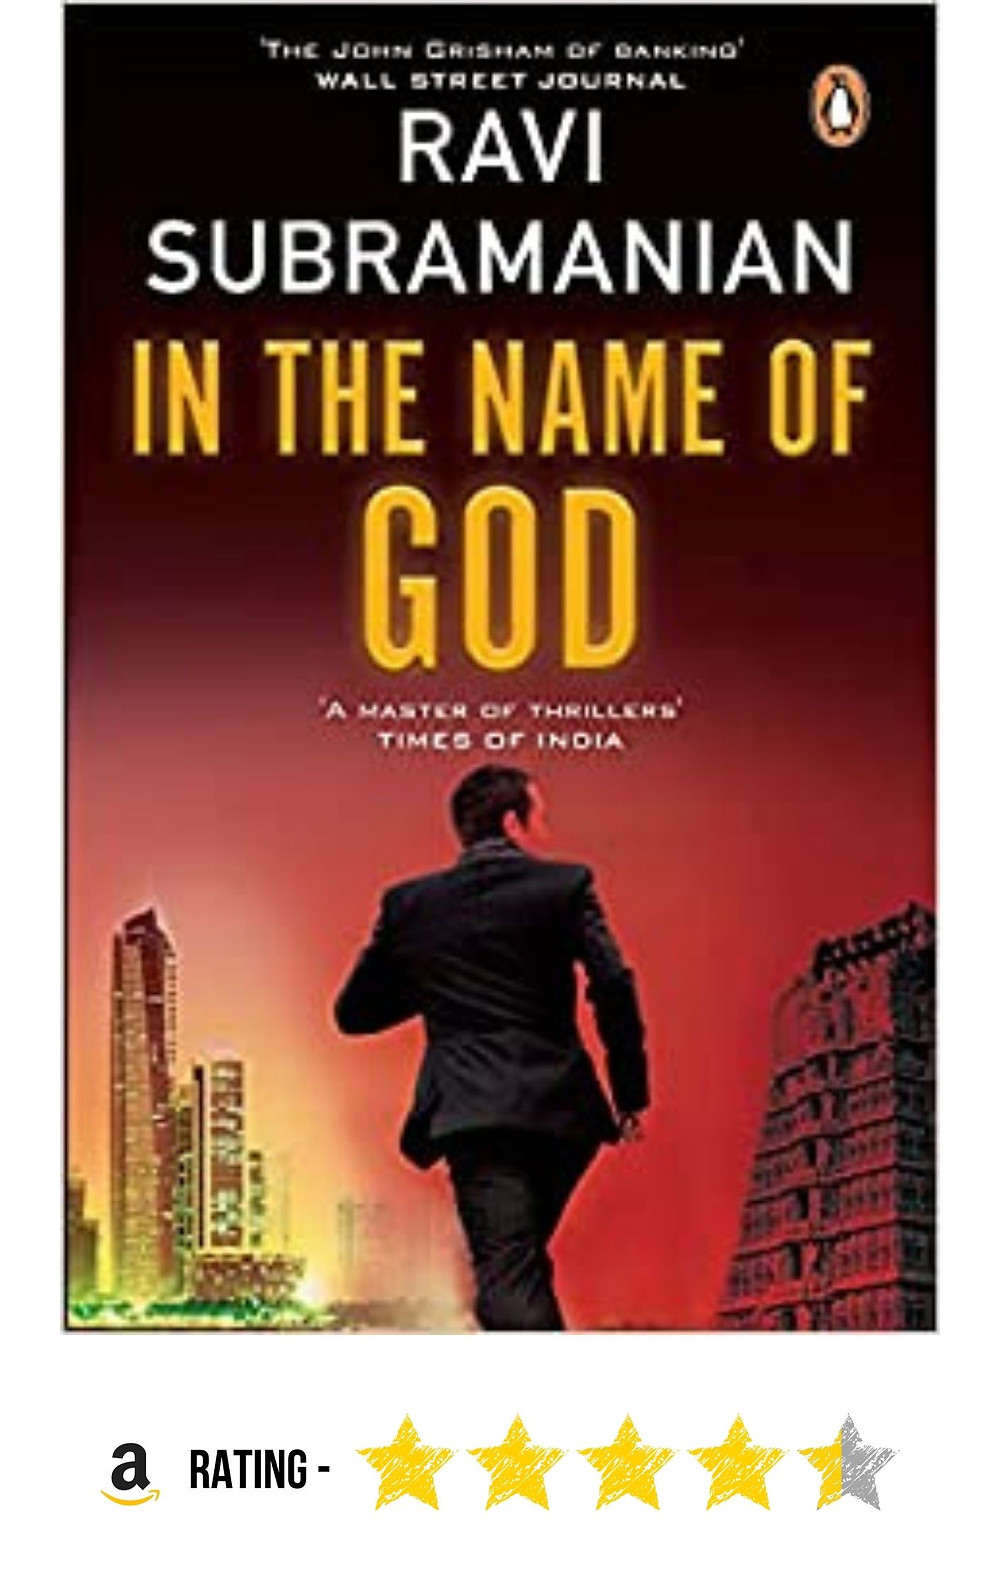 Amazon purchase link to Ravi Subramanian's mystery thriller, 'In the Name of God'